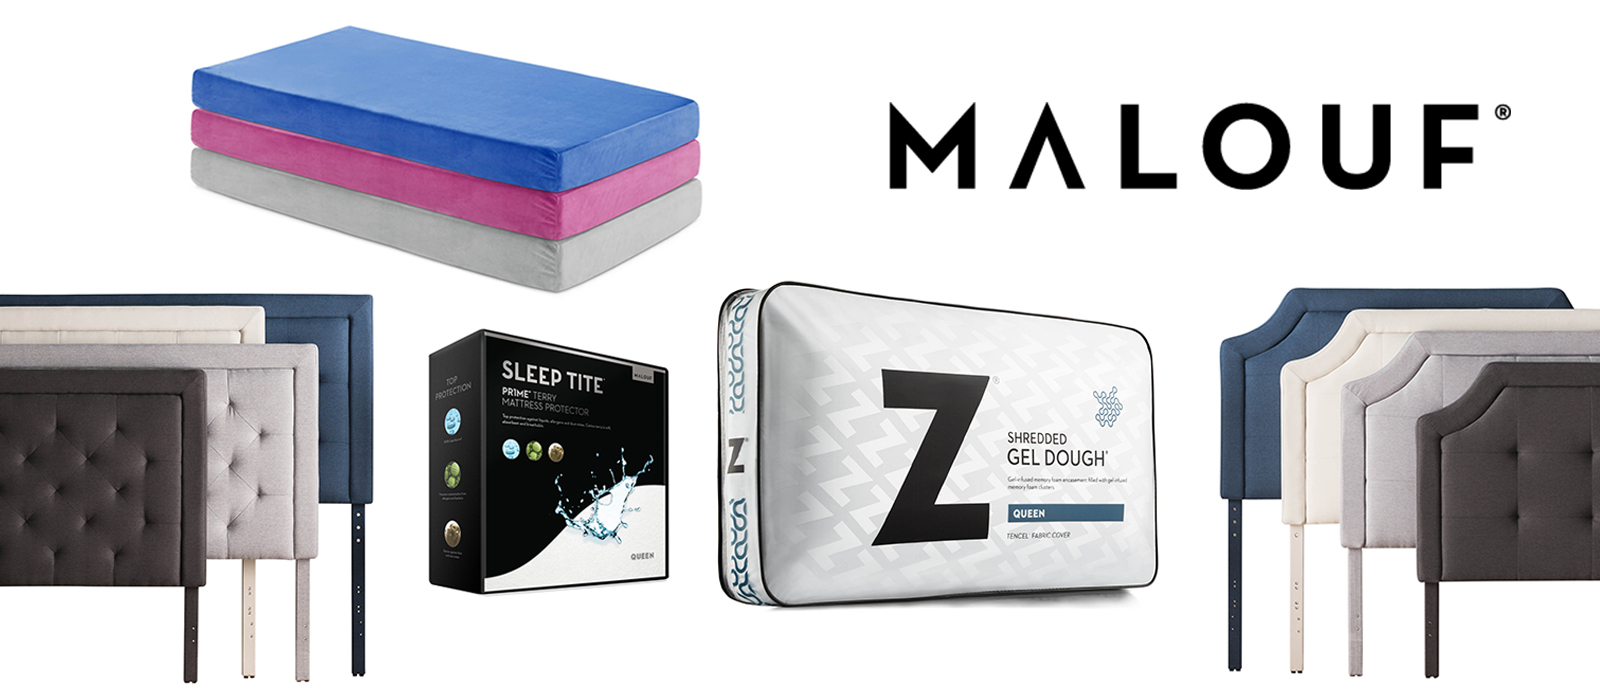 Malouf Sleep Tite Mattress Protector Additional Brands Mattress Warehouse